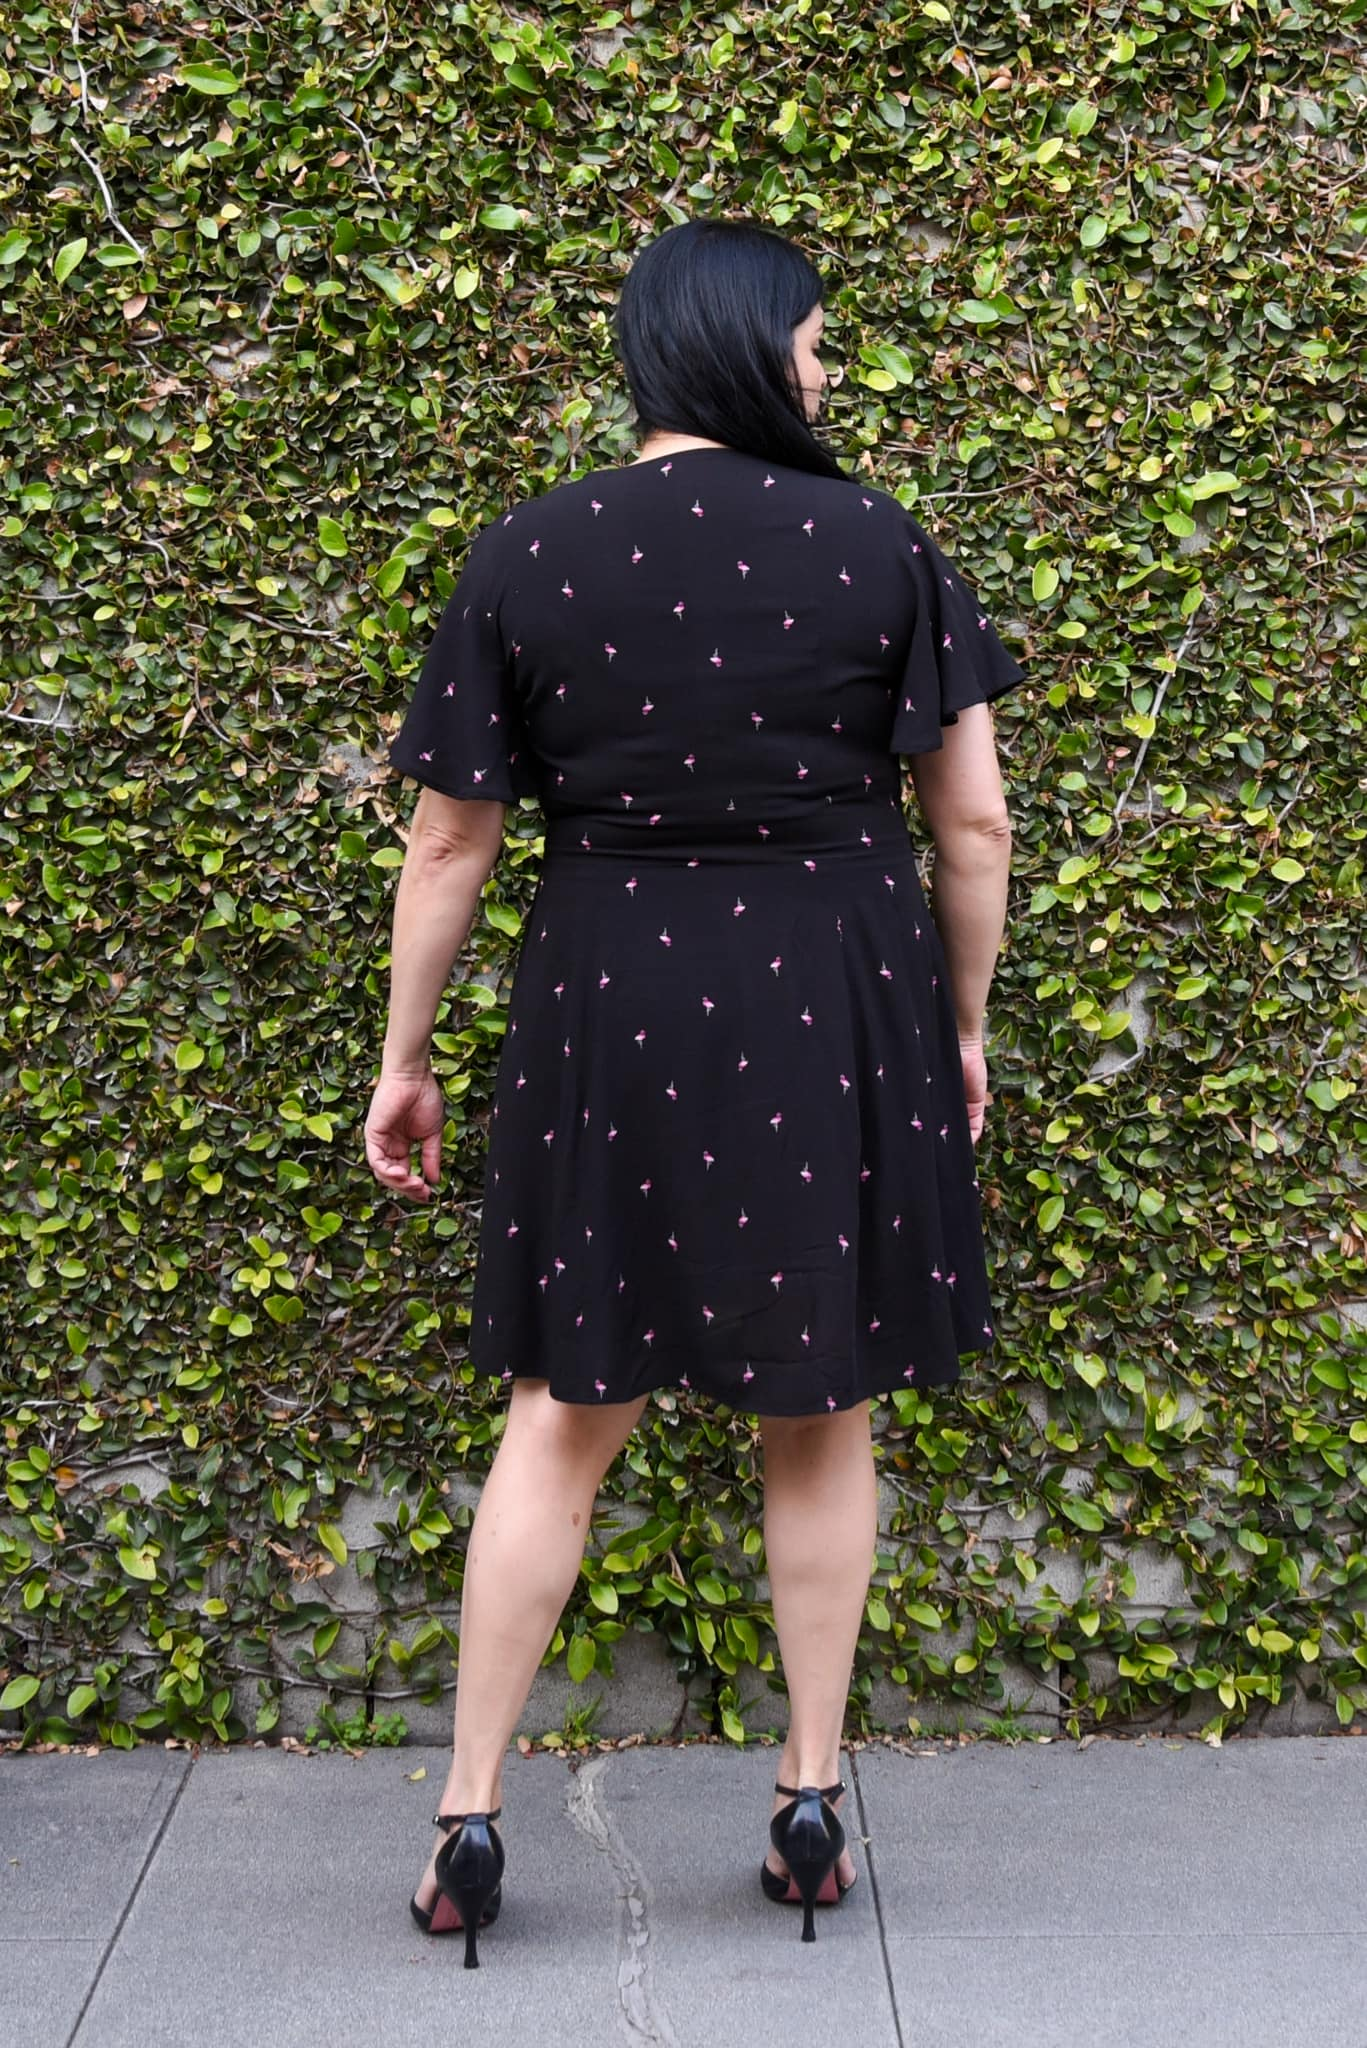 Image of a woman with long black hair wearing a Magnolia dress in black with tiny pink flamingos scattered like polka dots standing with her back to the camera in front of a wall covered by ivy.